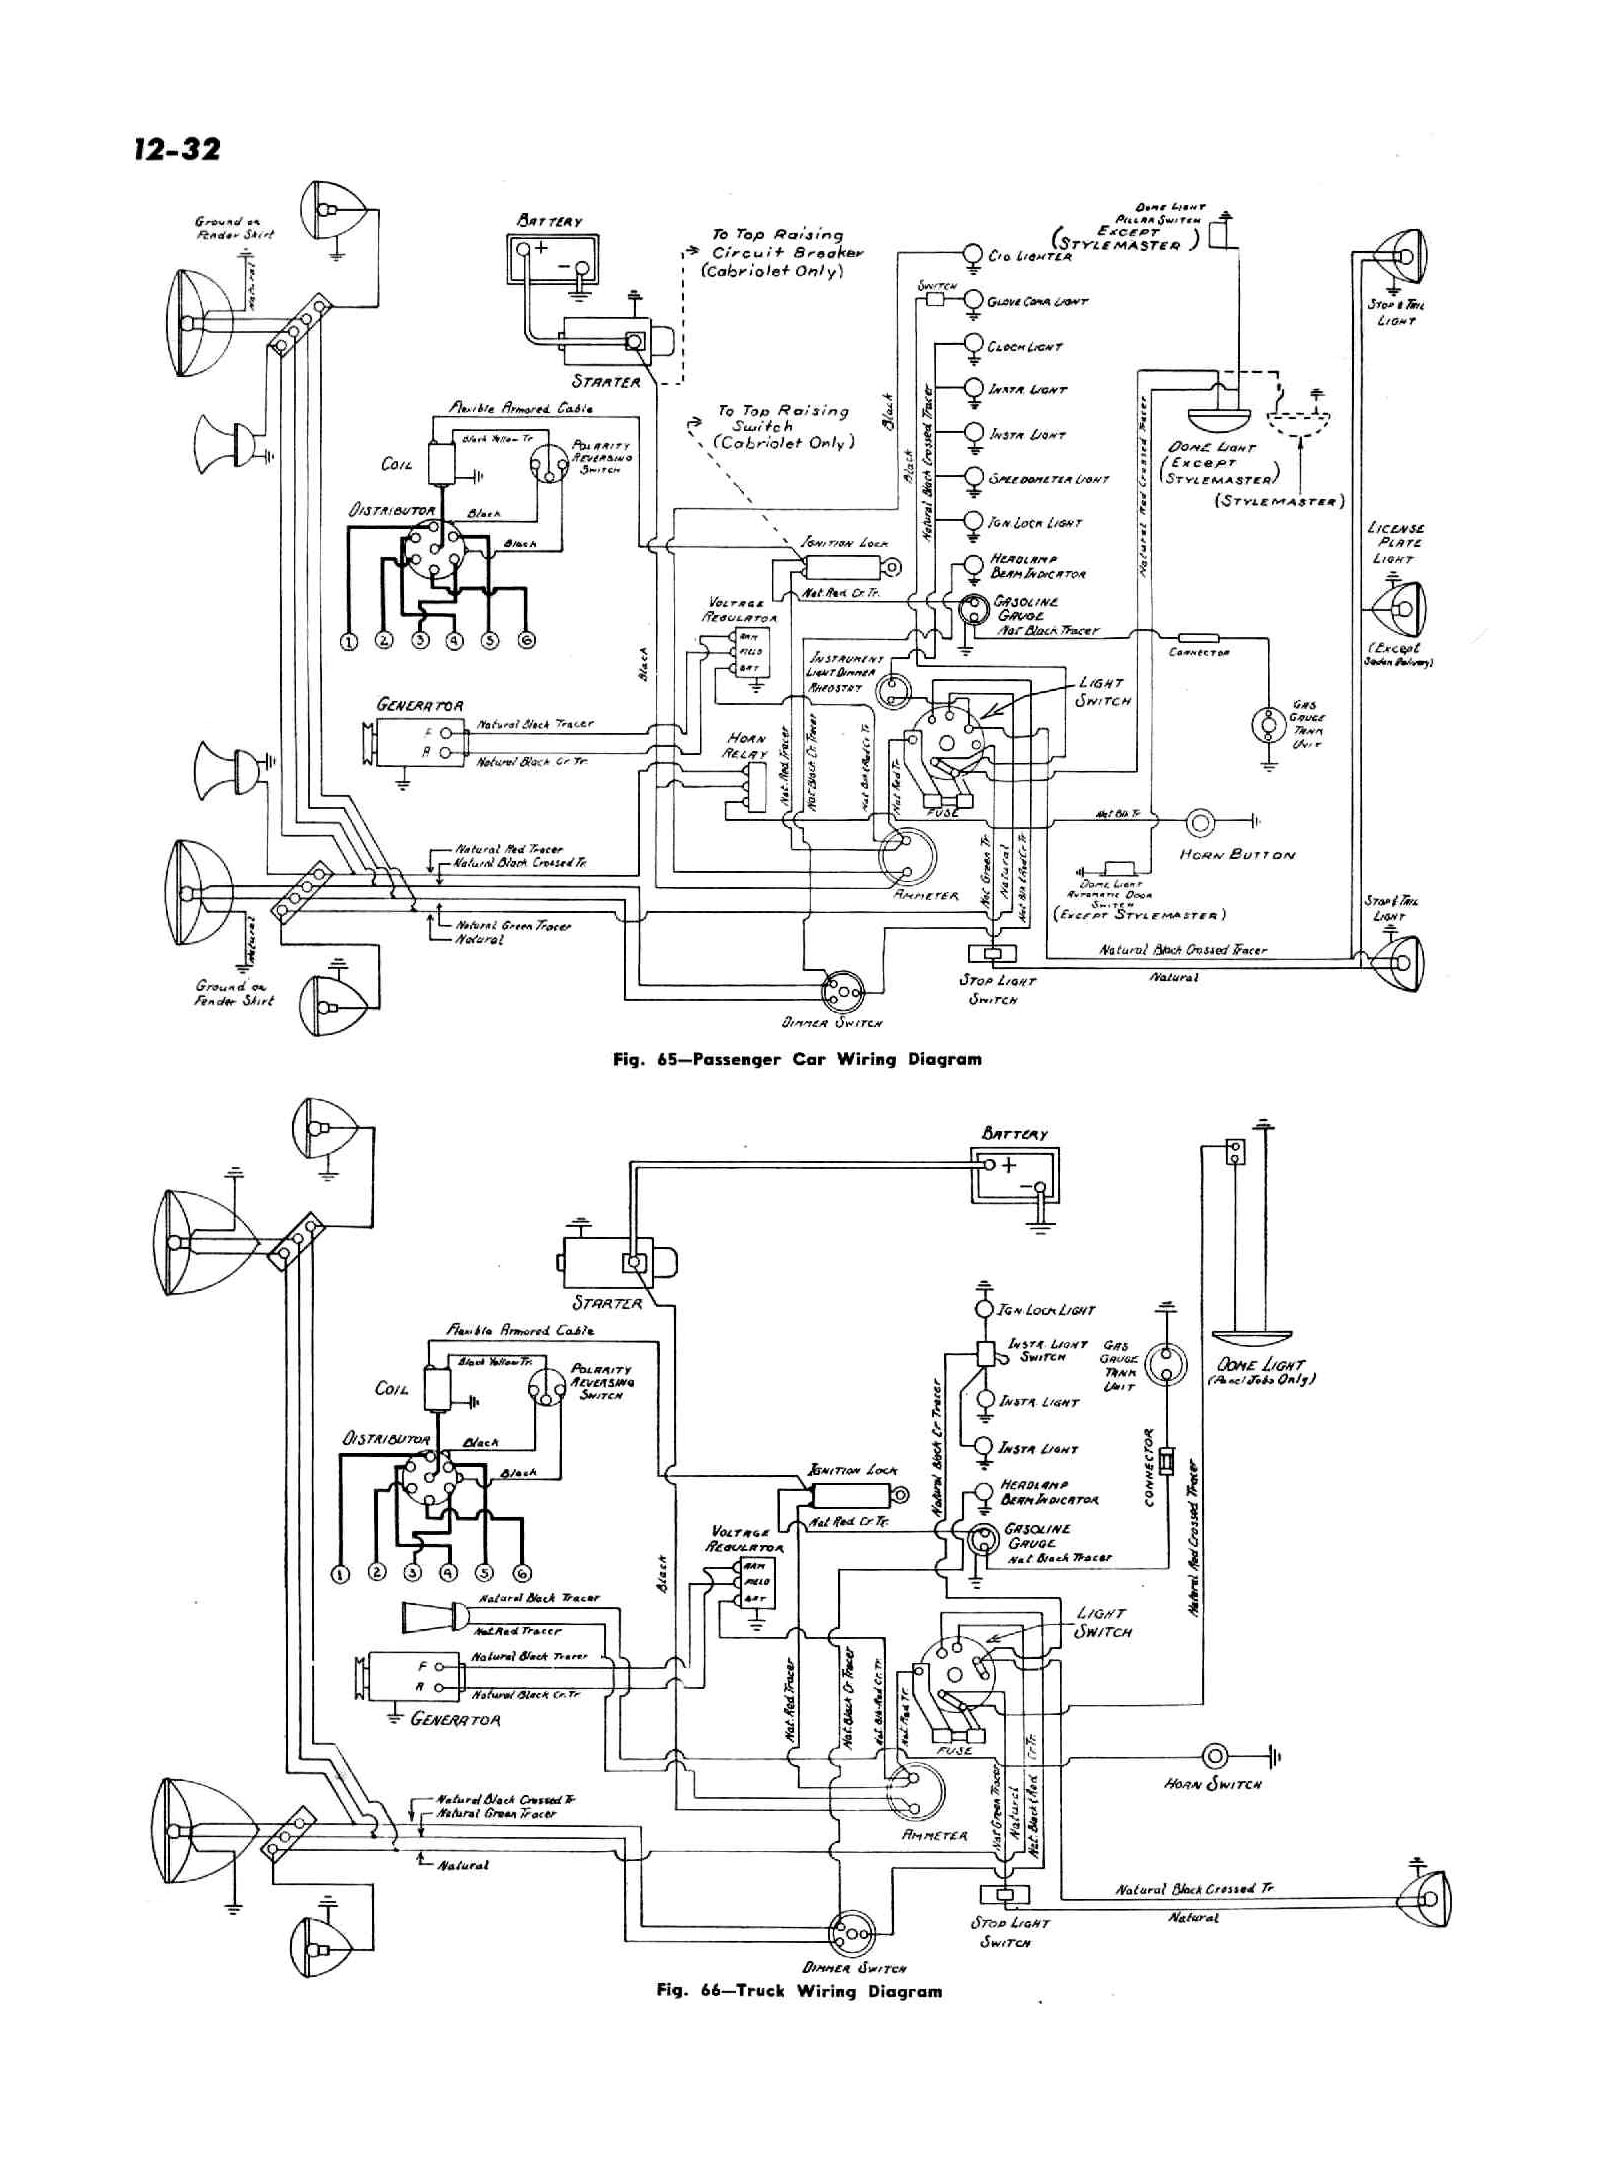 chevy wiring diagrams 1989 Chevy Truck Wiring Diagram